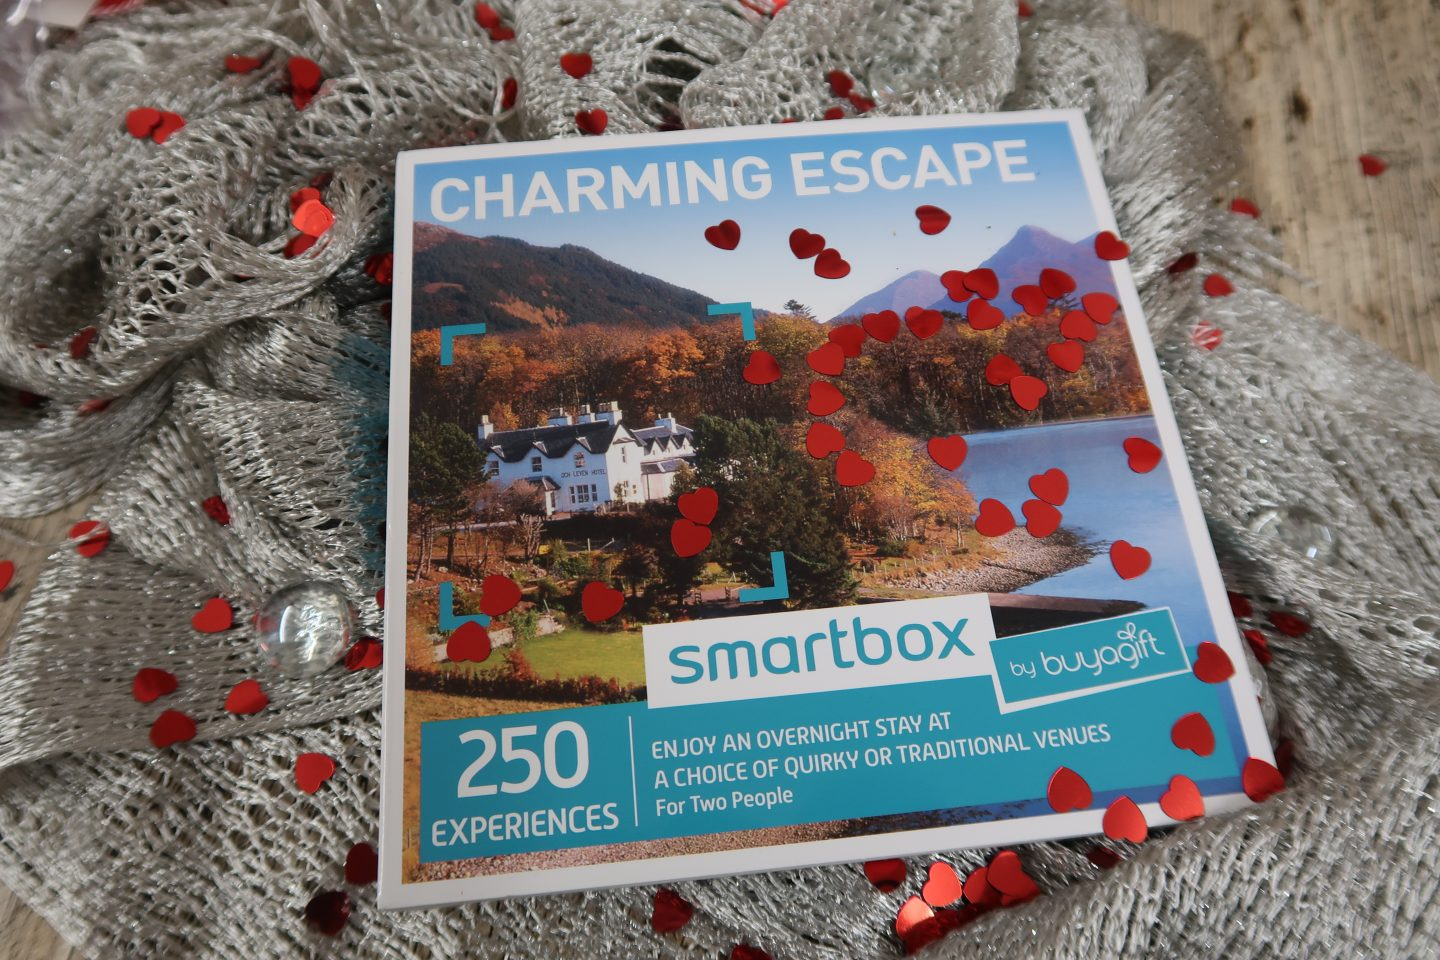 Hotel Caminetto Smartbox Charming Escape Smartbox By Buyagift Review Adventures In